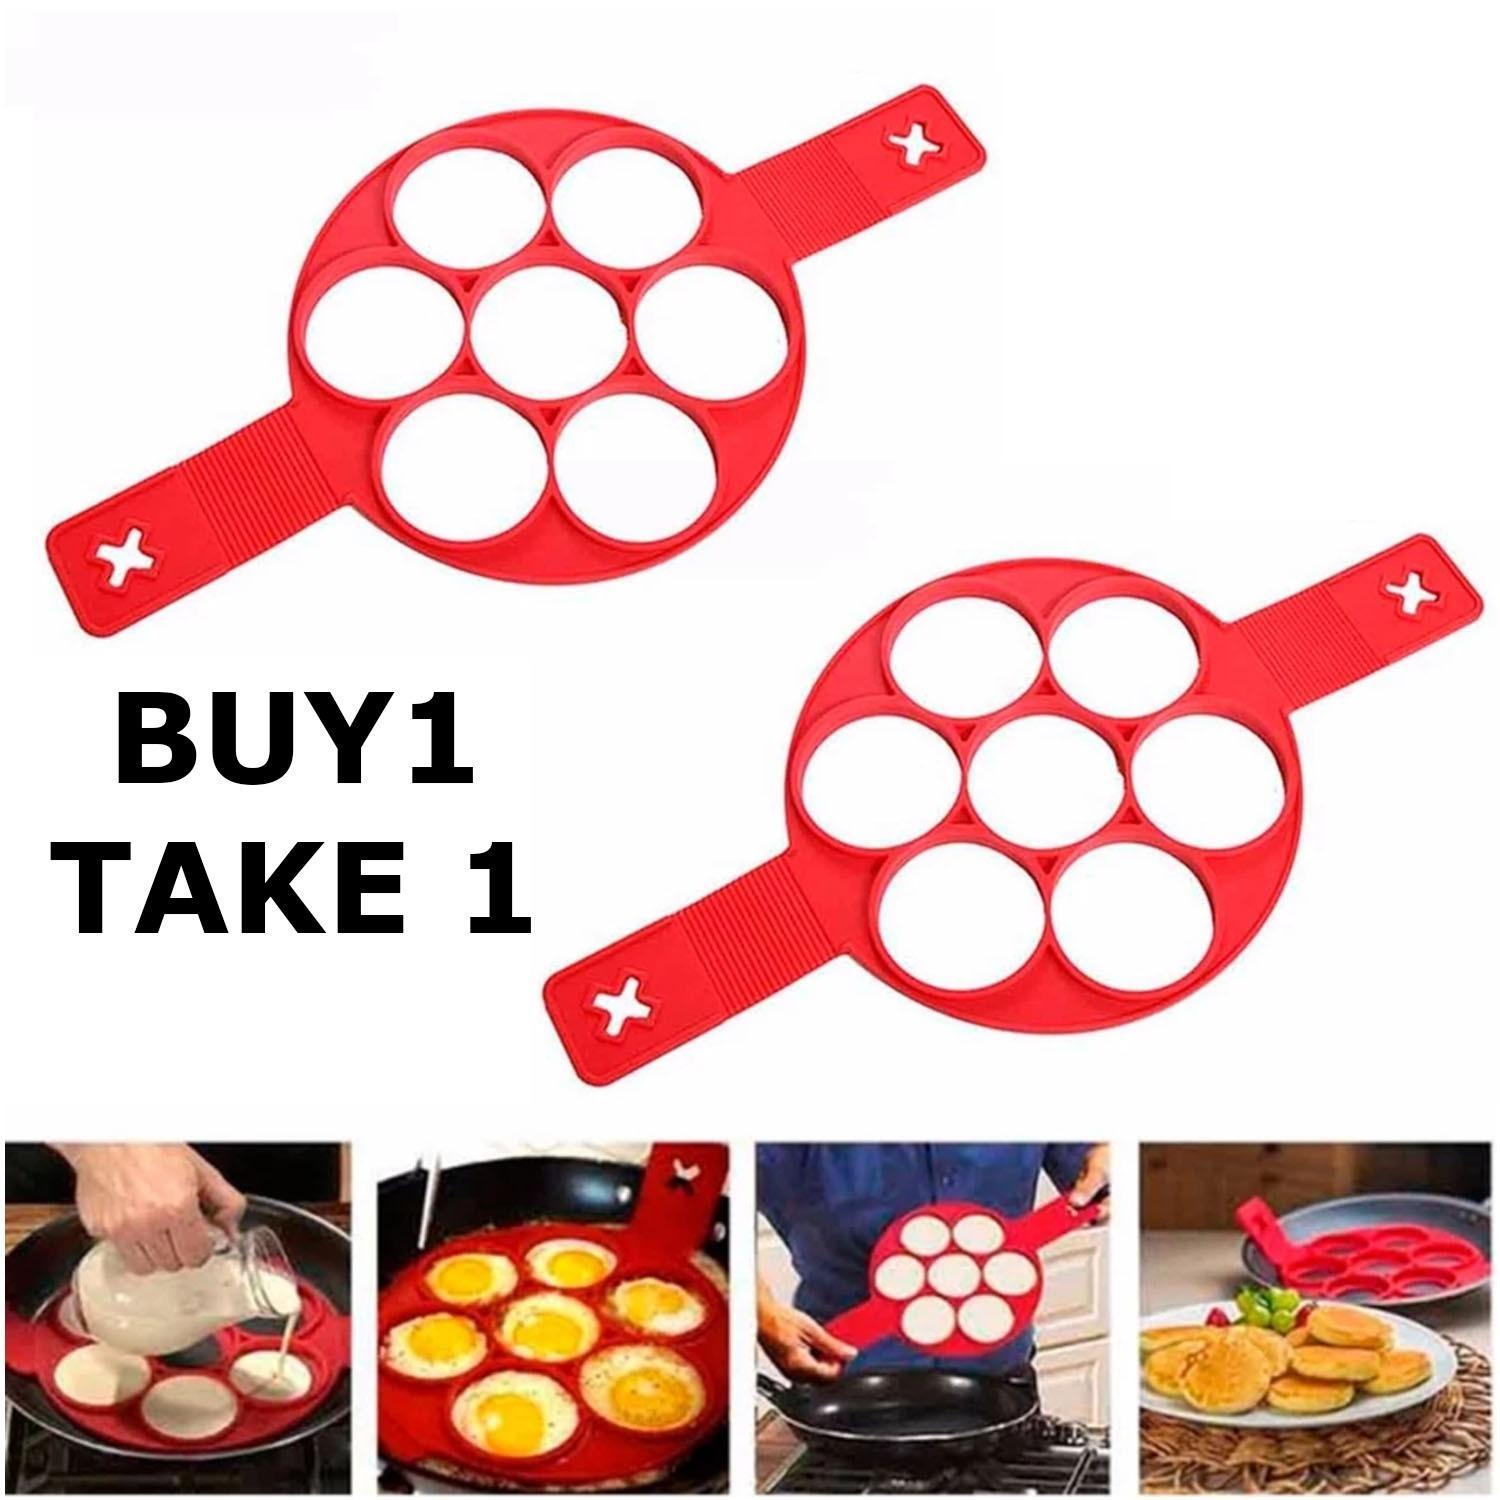 Gk Buy 1 Take1 7holes Silicone Perfect Pancakes Pan Breakfast Maker Egg Flippin Fantastic - Intl By Chloe Lifeneeds.